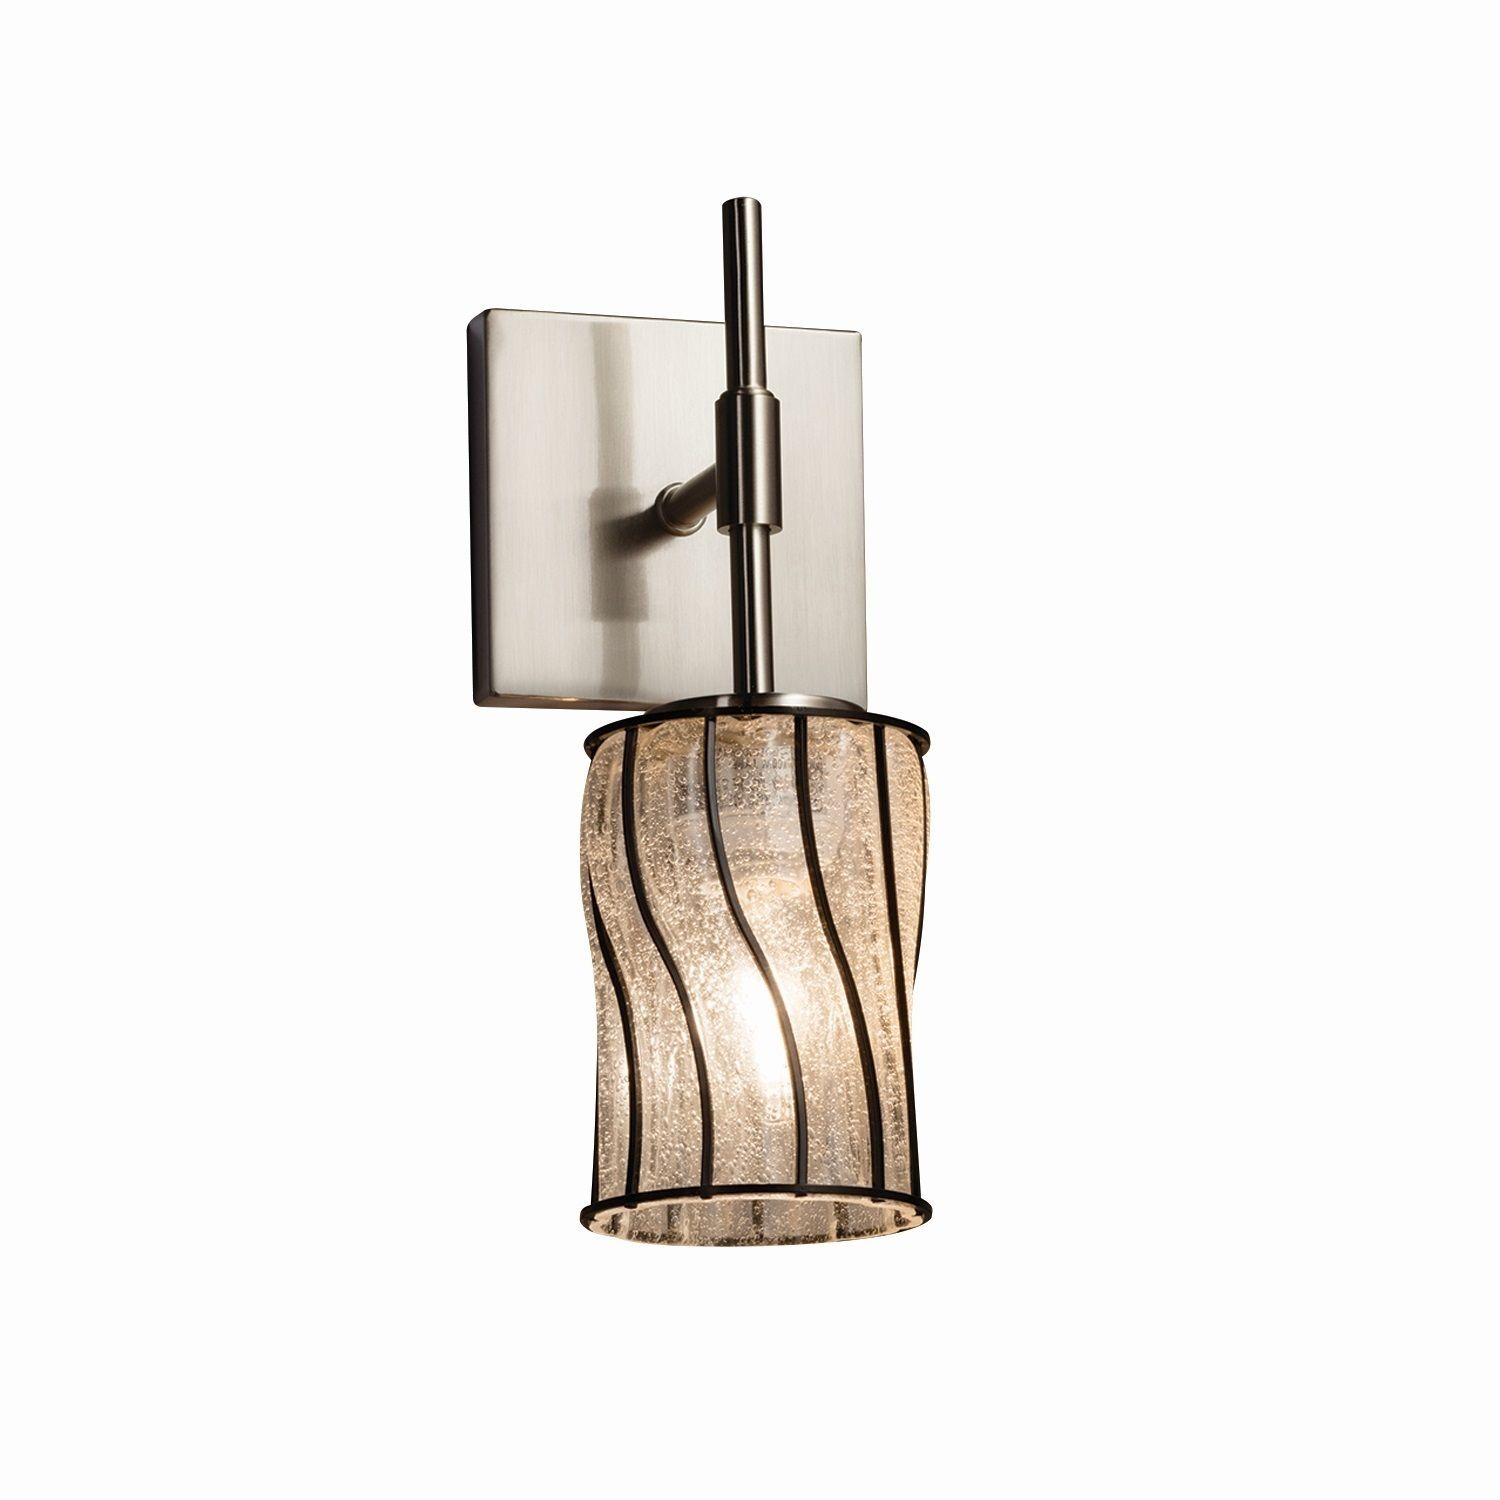 Justice Design Group Wire Glass Union Tall Wall Sconce